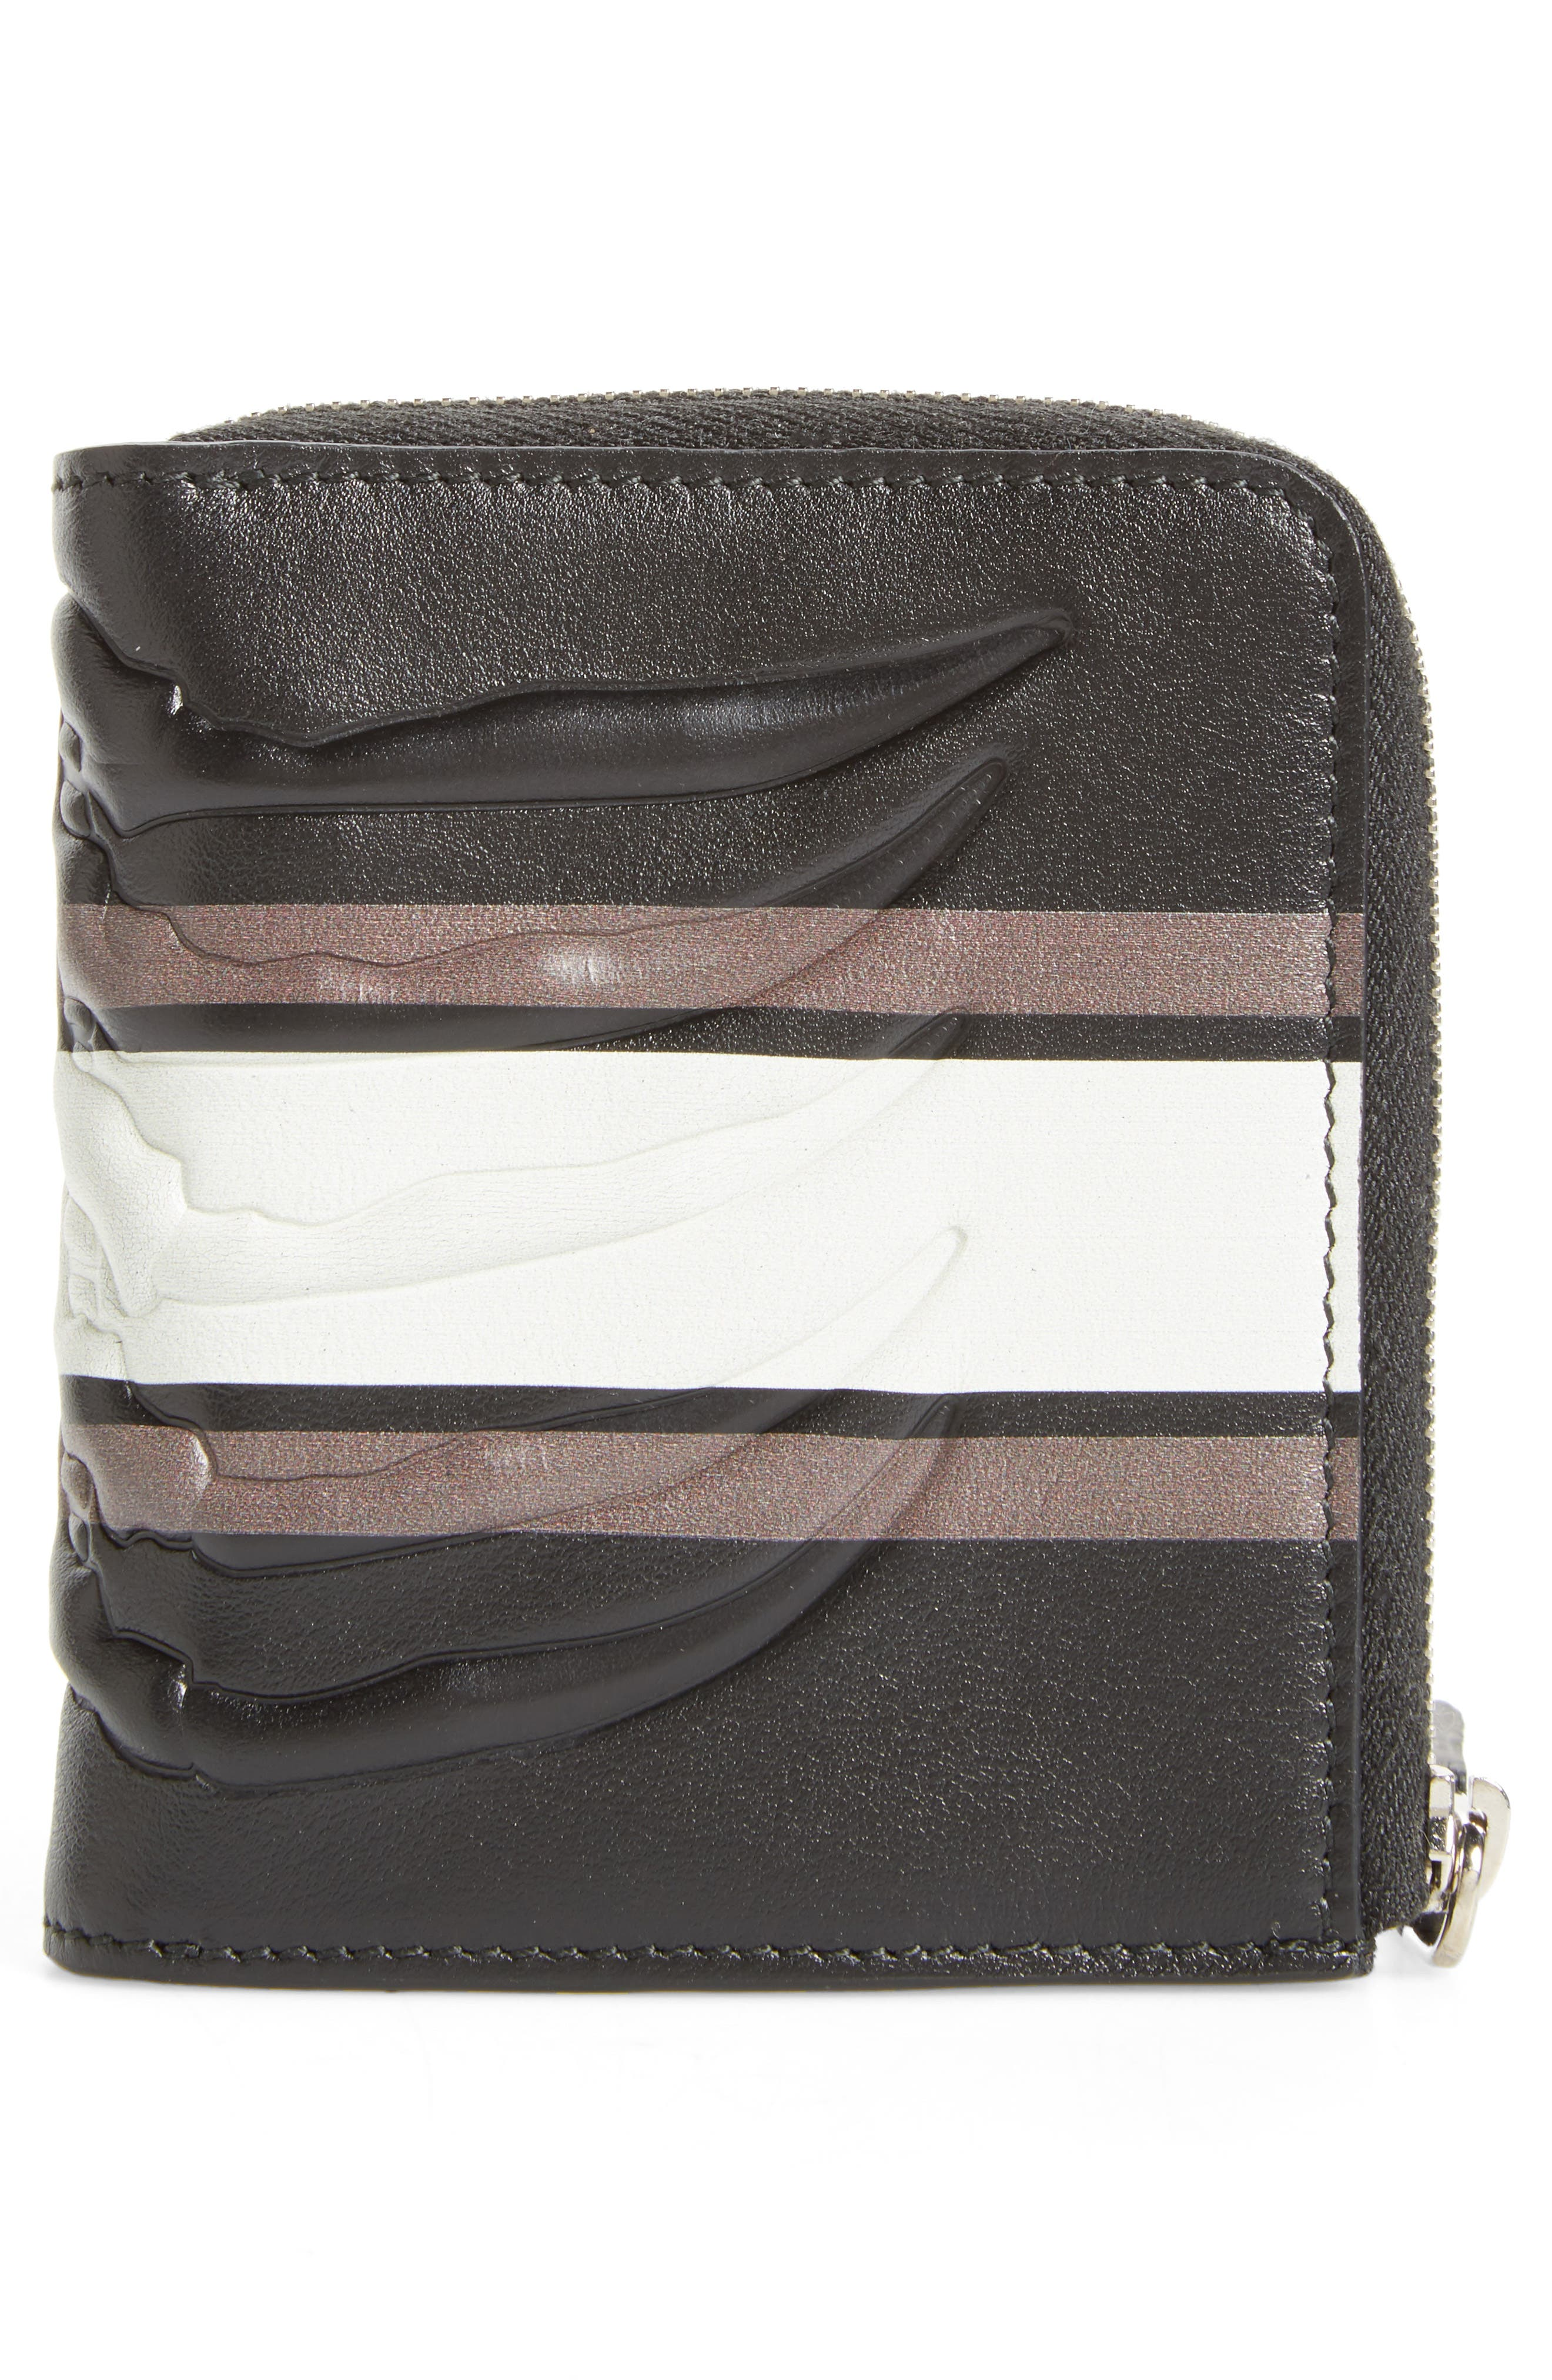 Leather Half Zip Wallet,                             Alternate thumbnail 3, color,                             001